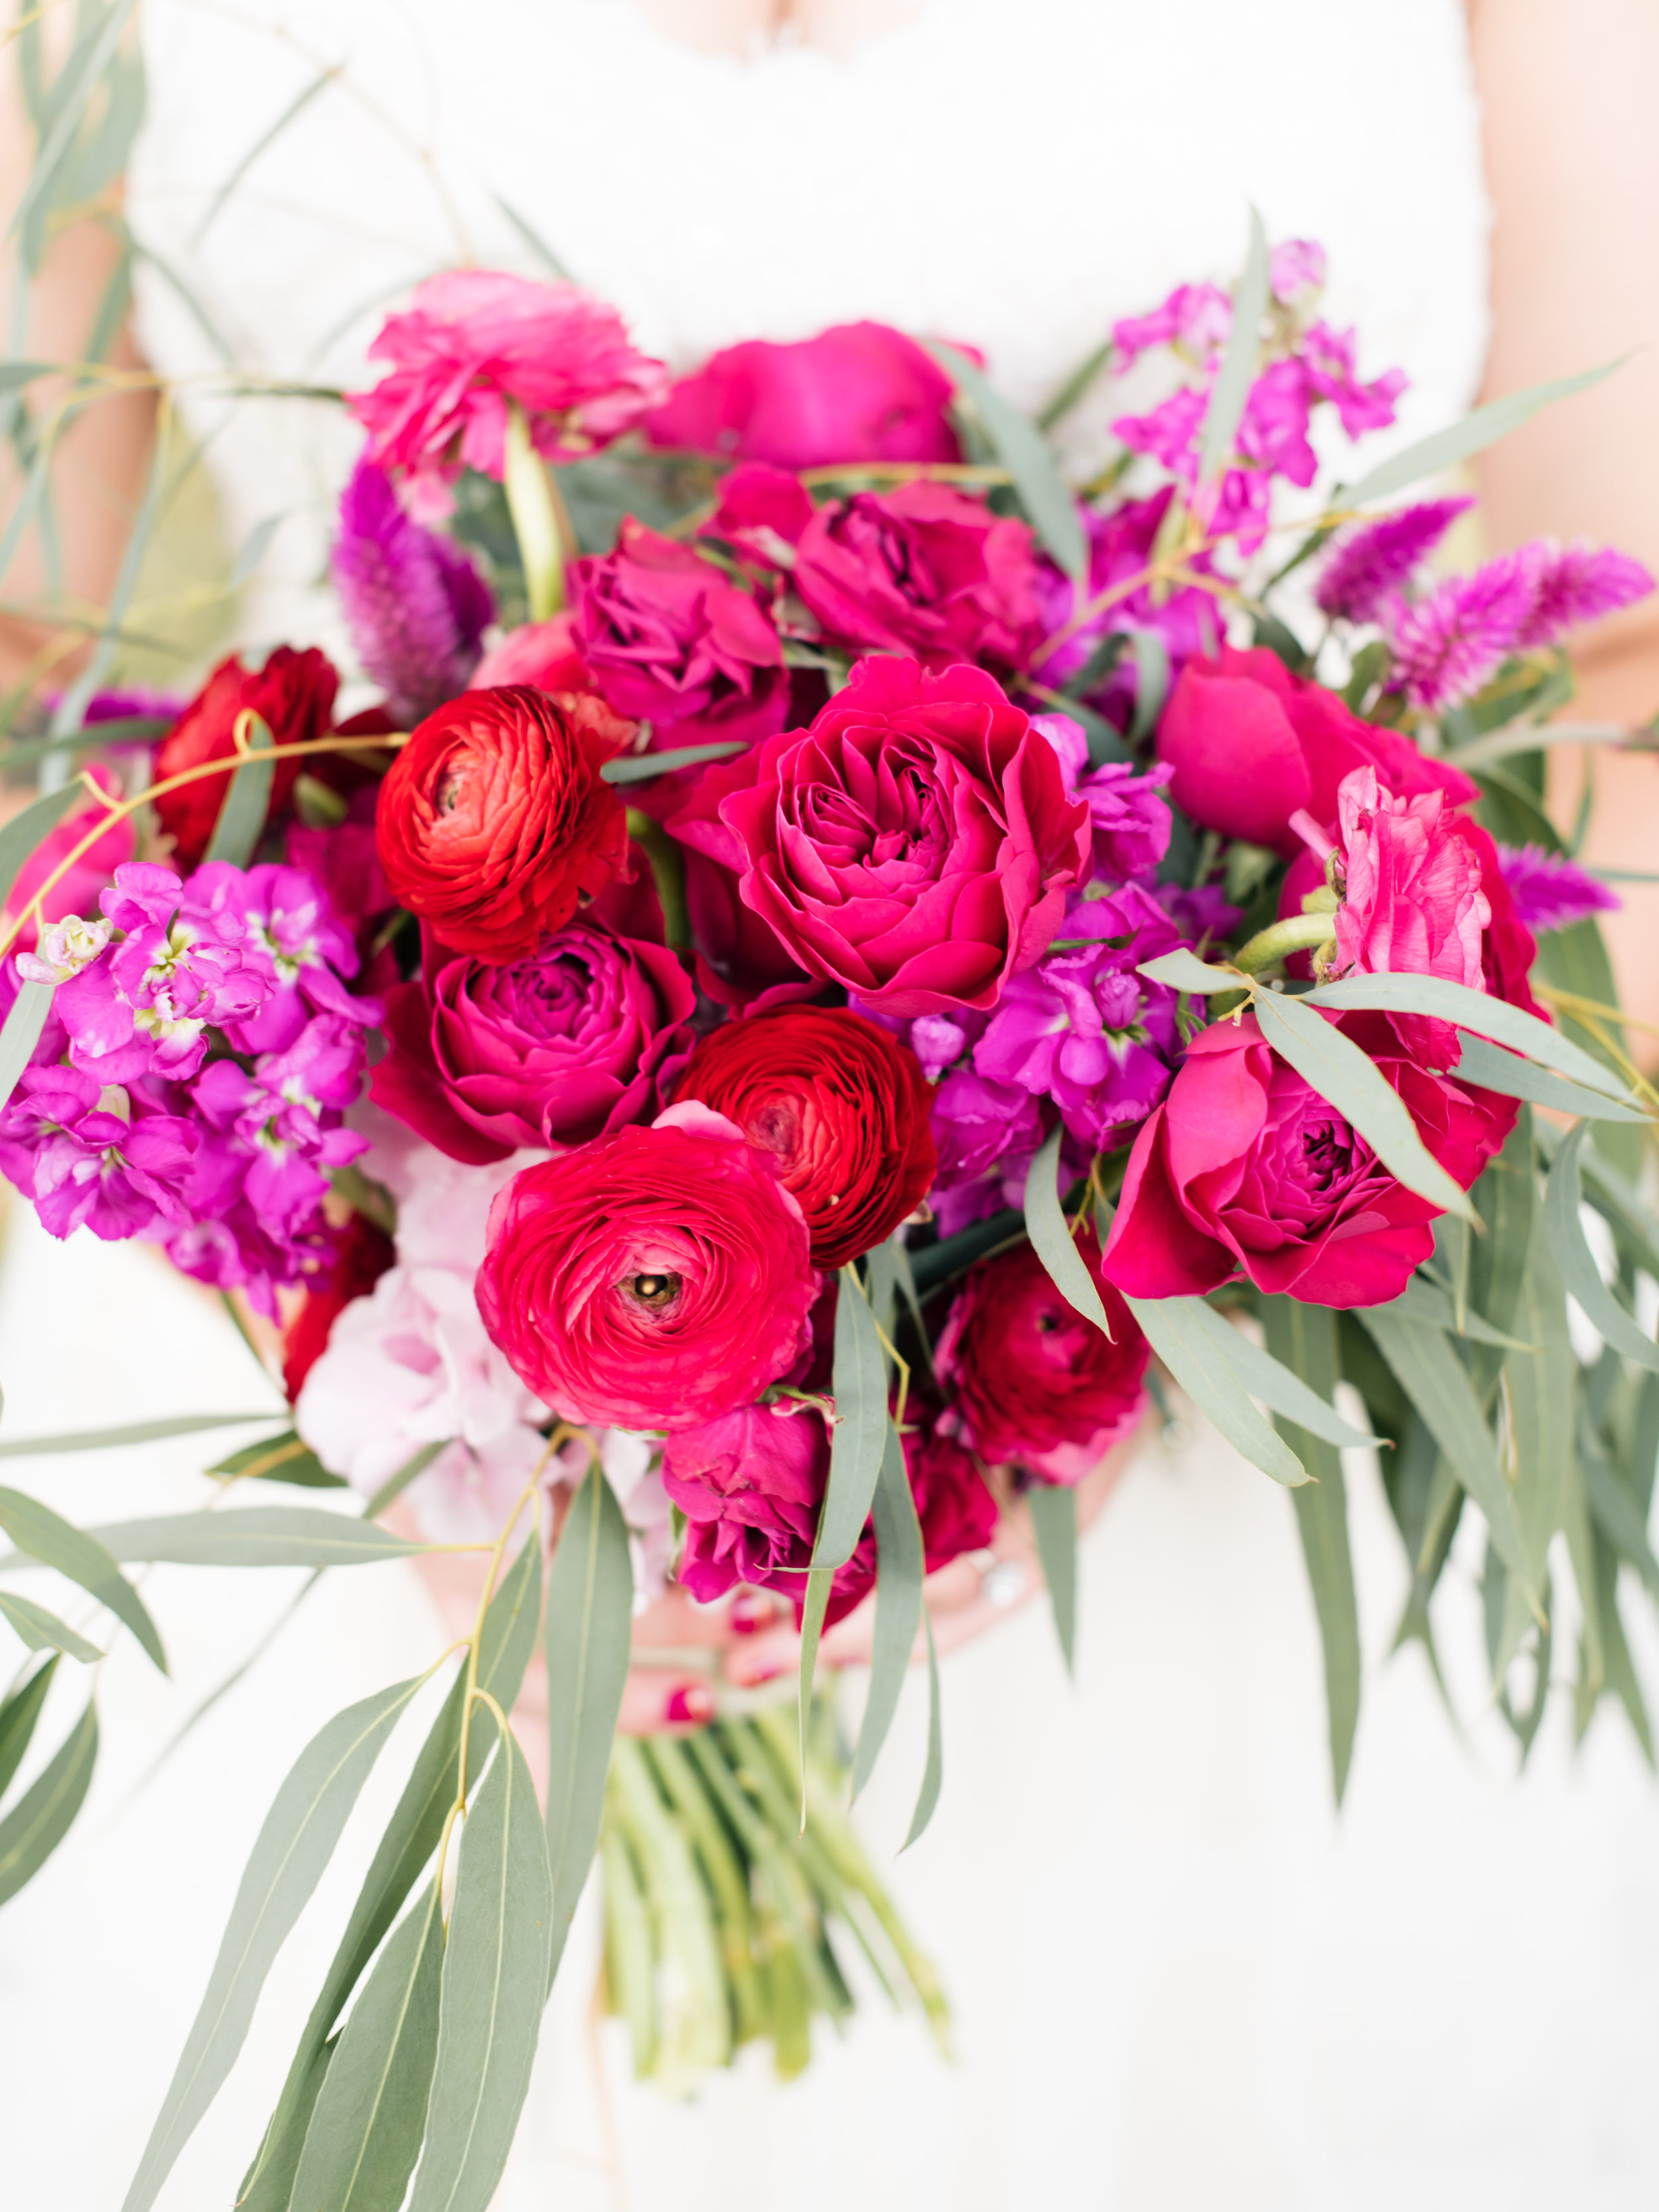 Flowers by Lace and Lilies, Ranunculus, Garden Rose, Eucalyptus, Vibrant Summer Bridal Bouquet